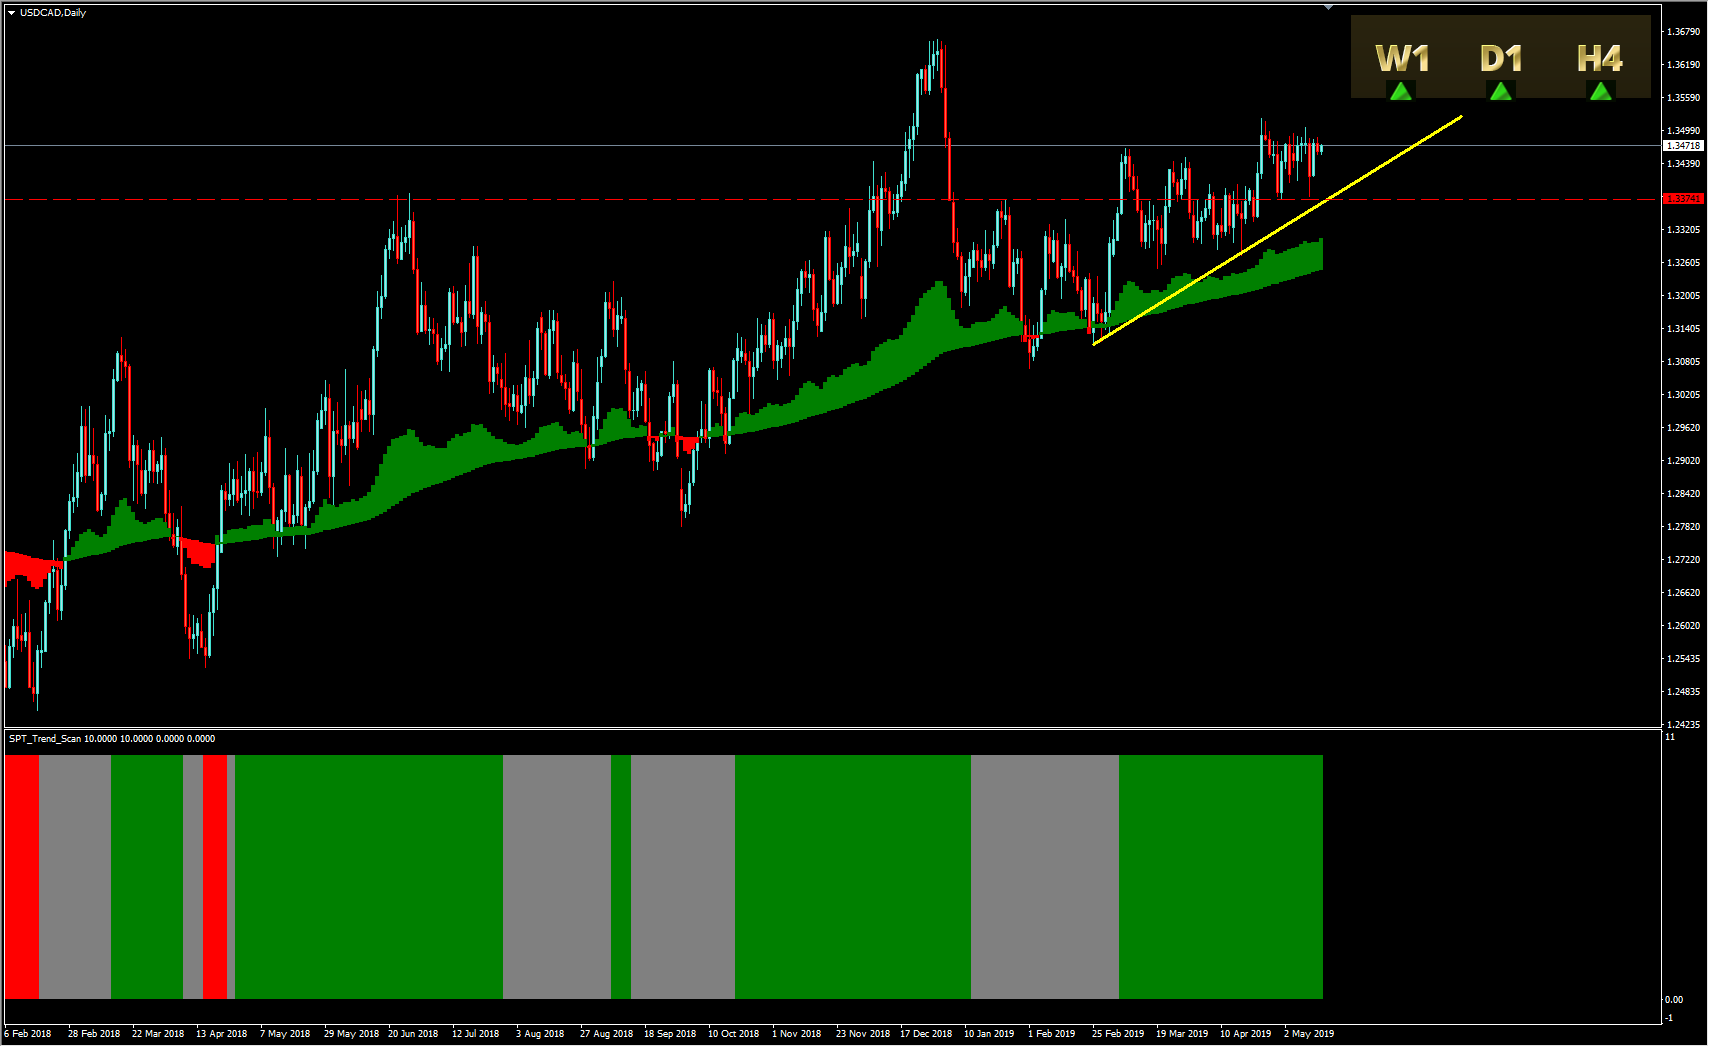 USDCAD Swing Point Trader Based Buy Idea